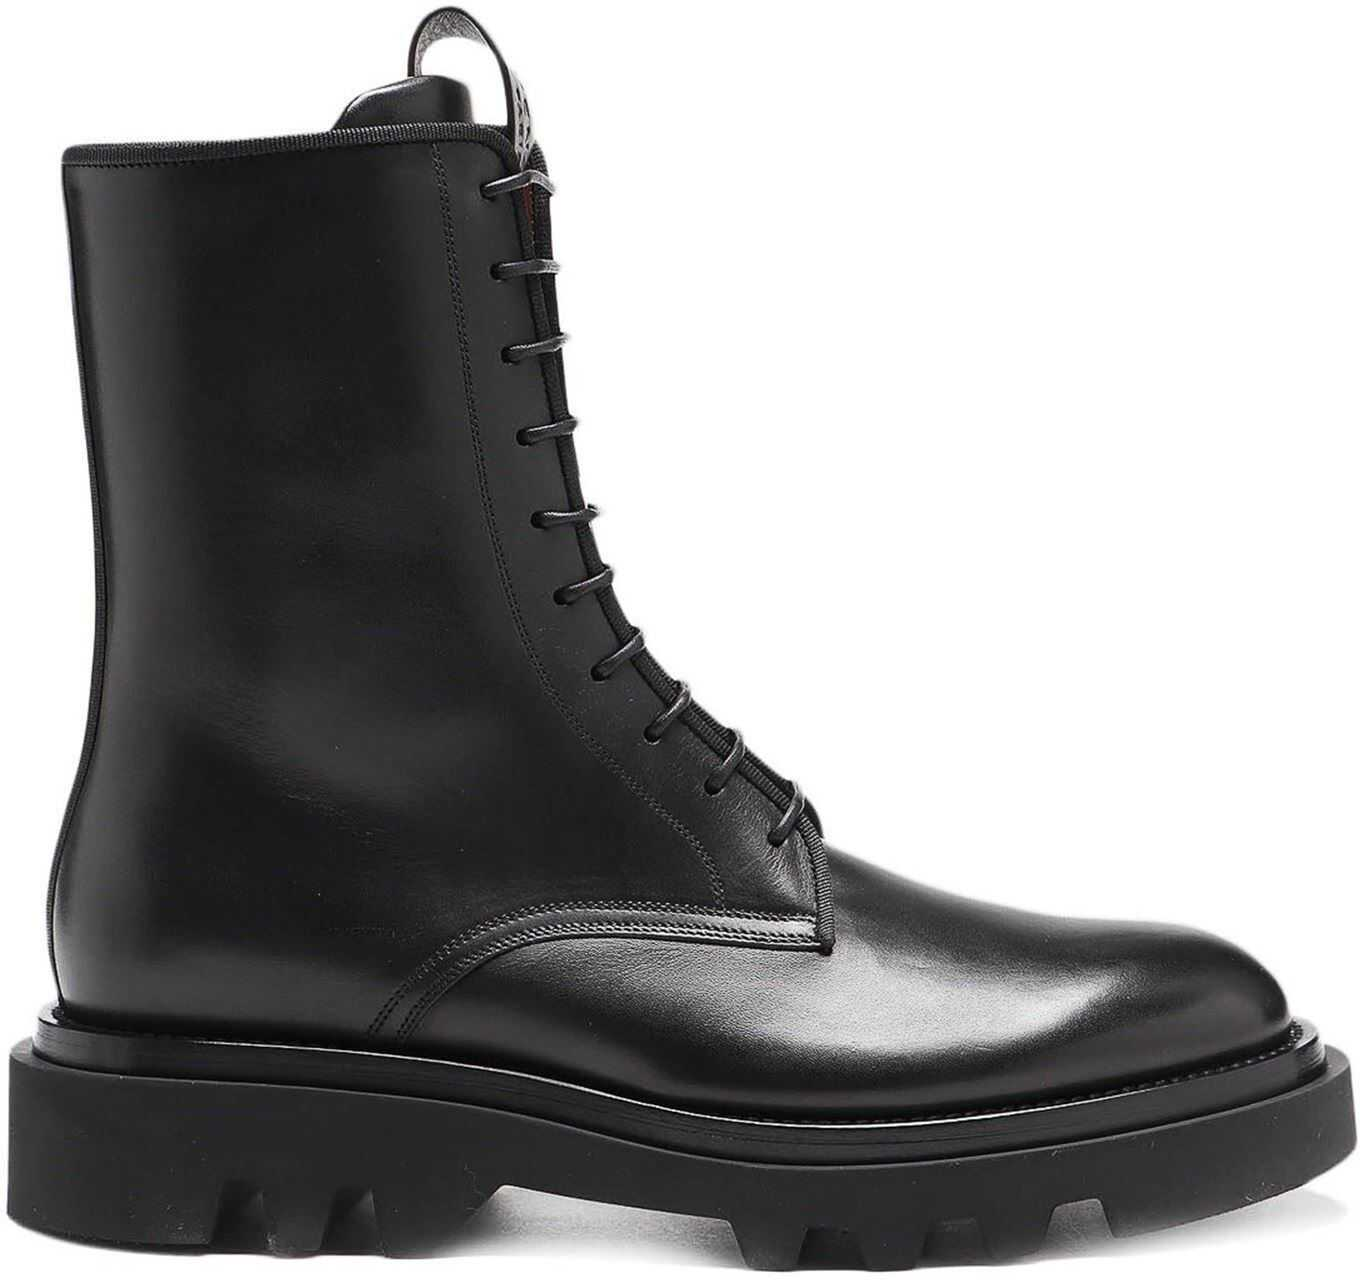 Givenchy Lace-Up Leather Combat Boots Black